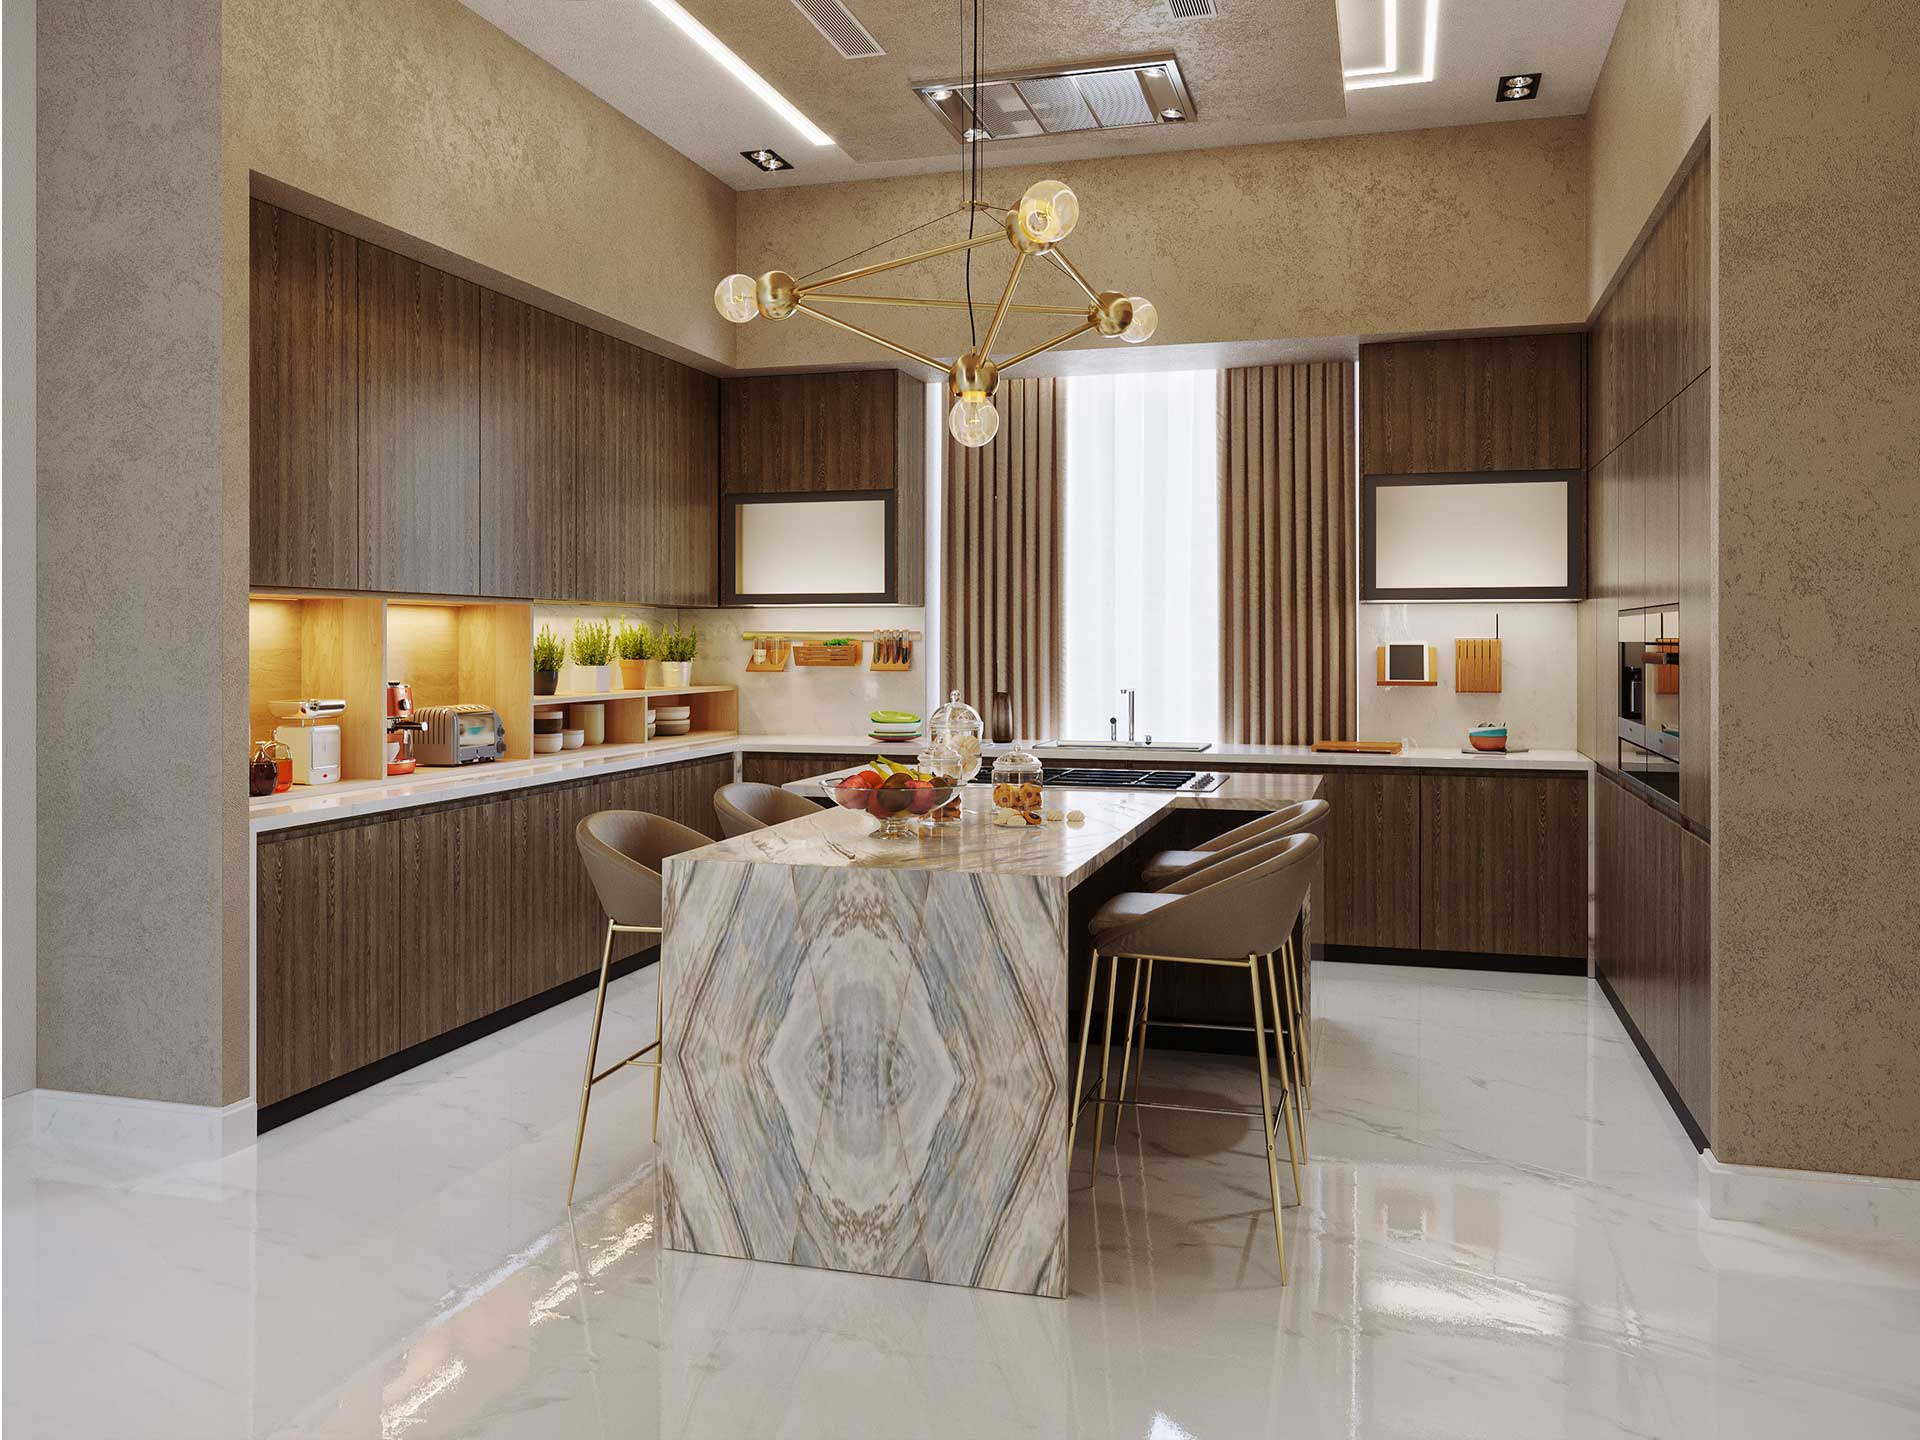 Architectural rendering Architectural visualization